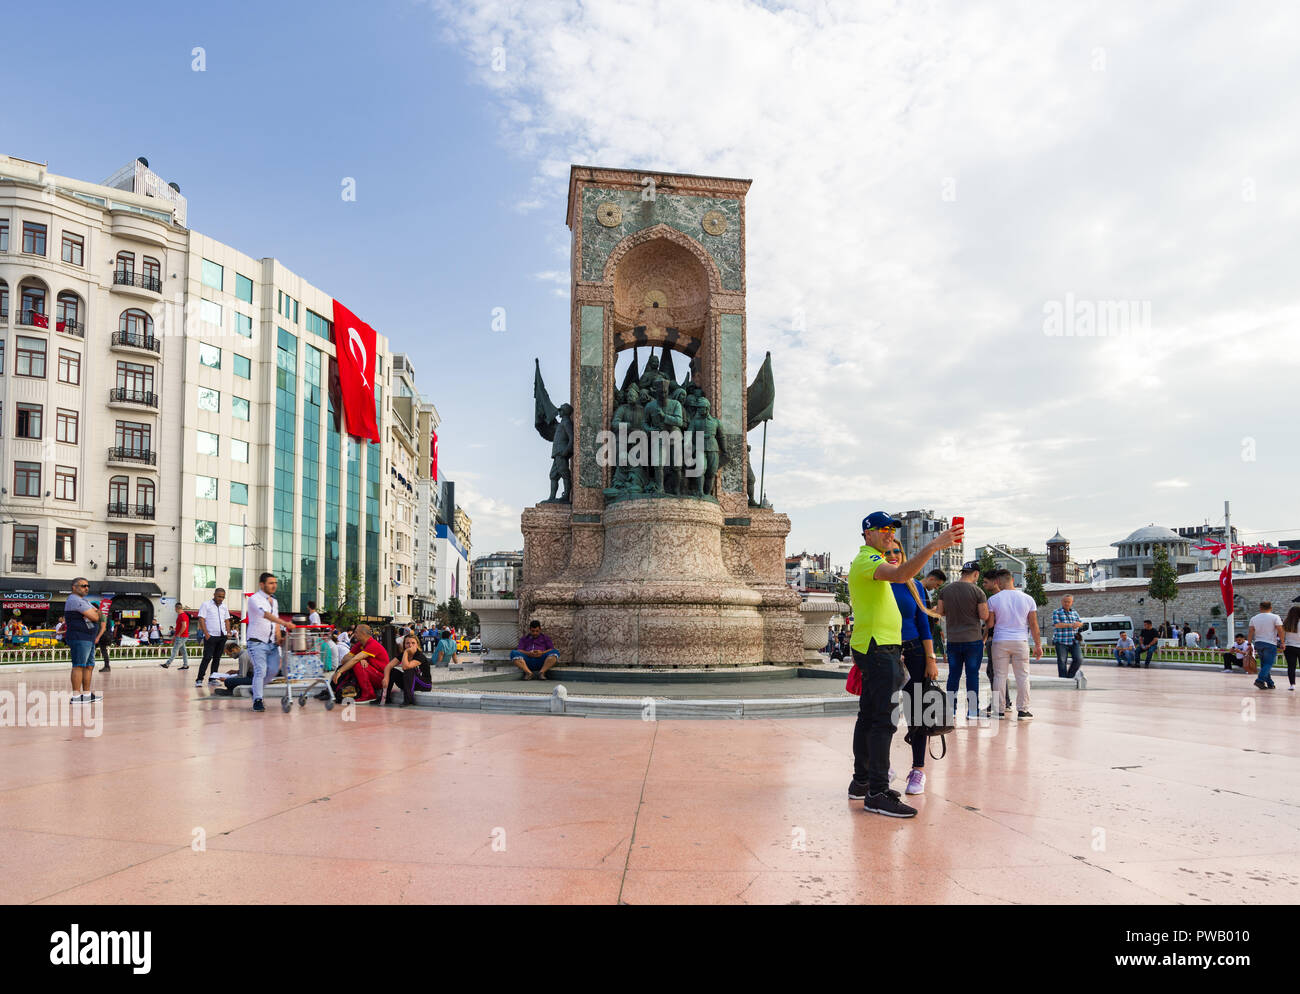 Locals and tourists at the Taksim Square memorial statue on a sunny Spring day, Istanbul, Turkey - Stock Image